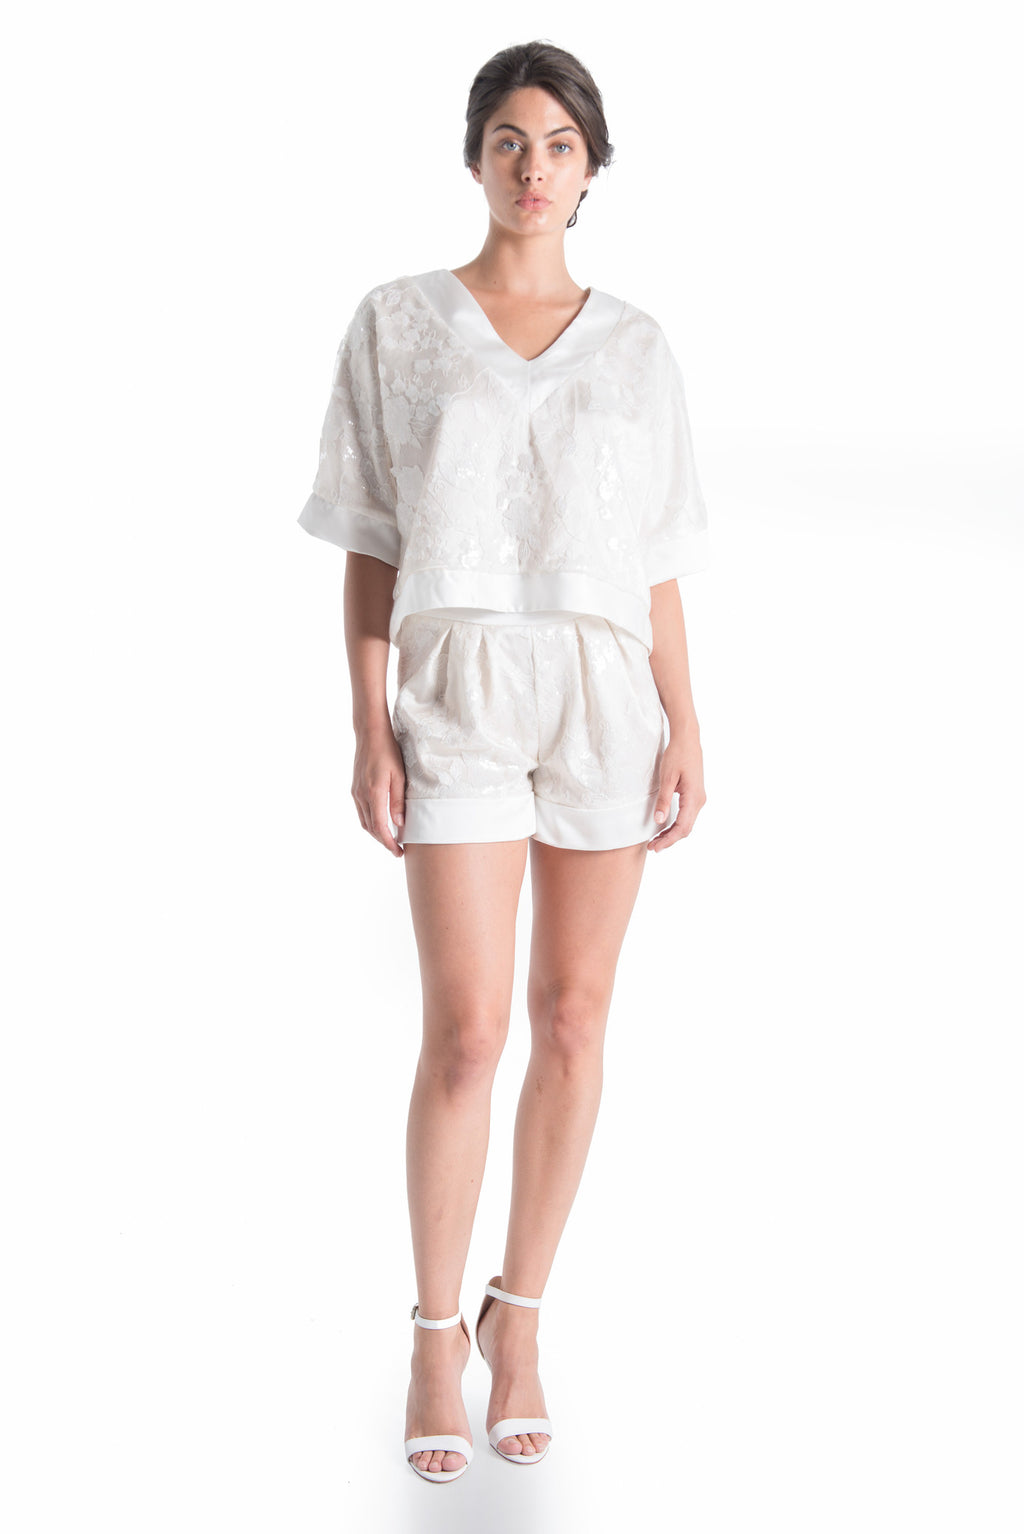 FLEUR Oversized Silk Top - NATURAL WHT | SAMPLE - HAUS OF SONG